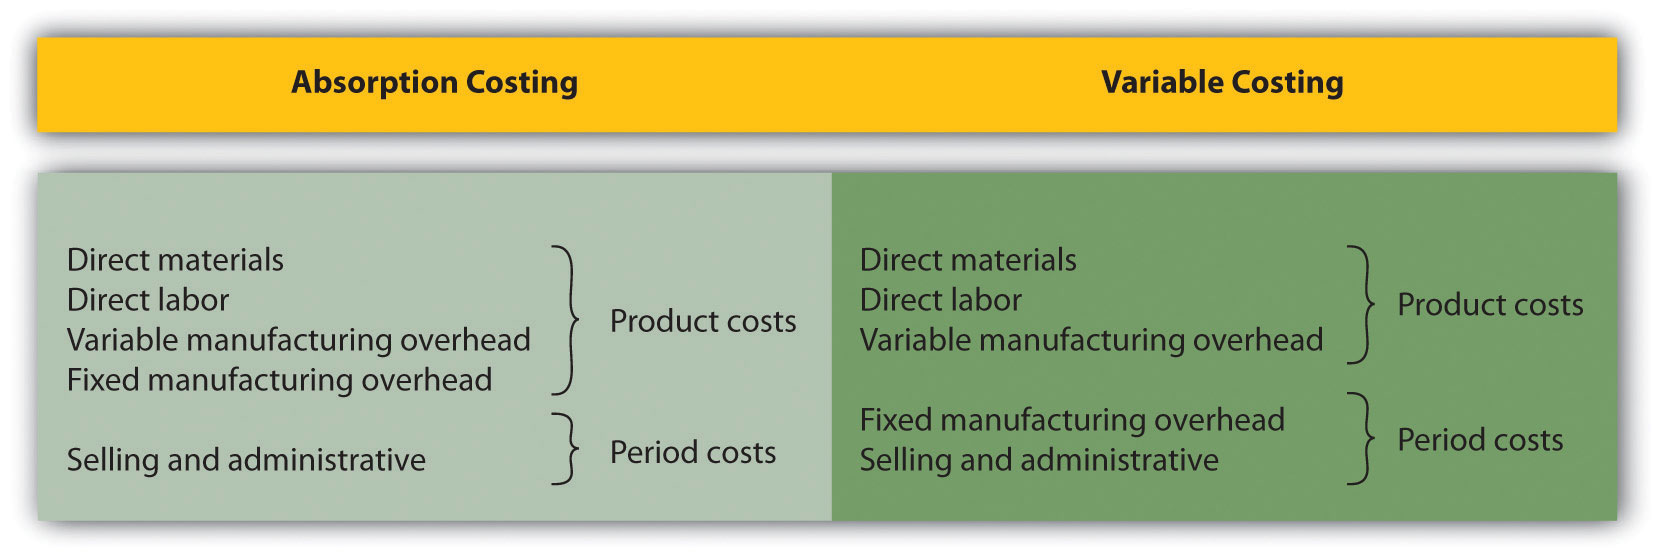 absorption costing method 2 understanding product costing and manufacturing accounting this chapter contains the following topics:  21 product costing and manufacturing accounting features  keeping unprofitable stock or using inappropriate costing methods for inventory can quickly deplete profits.